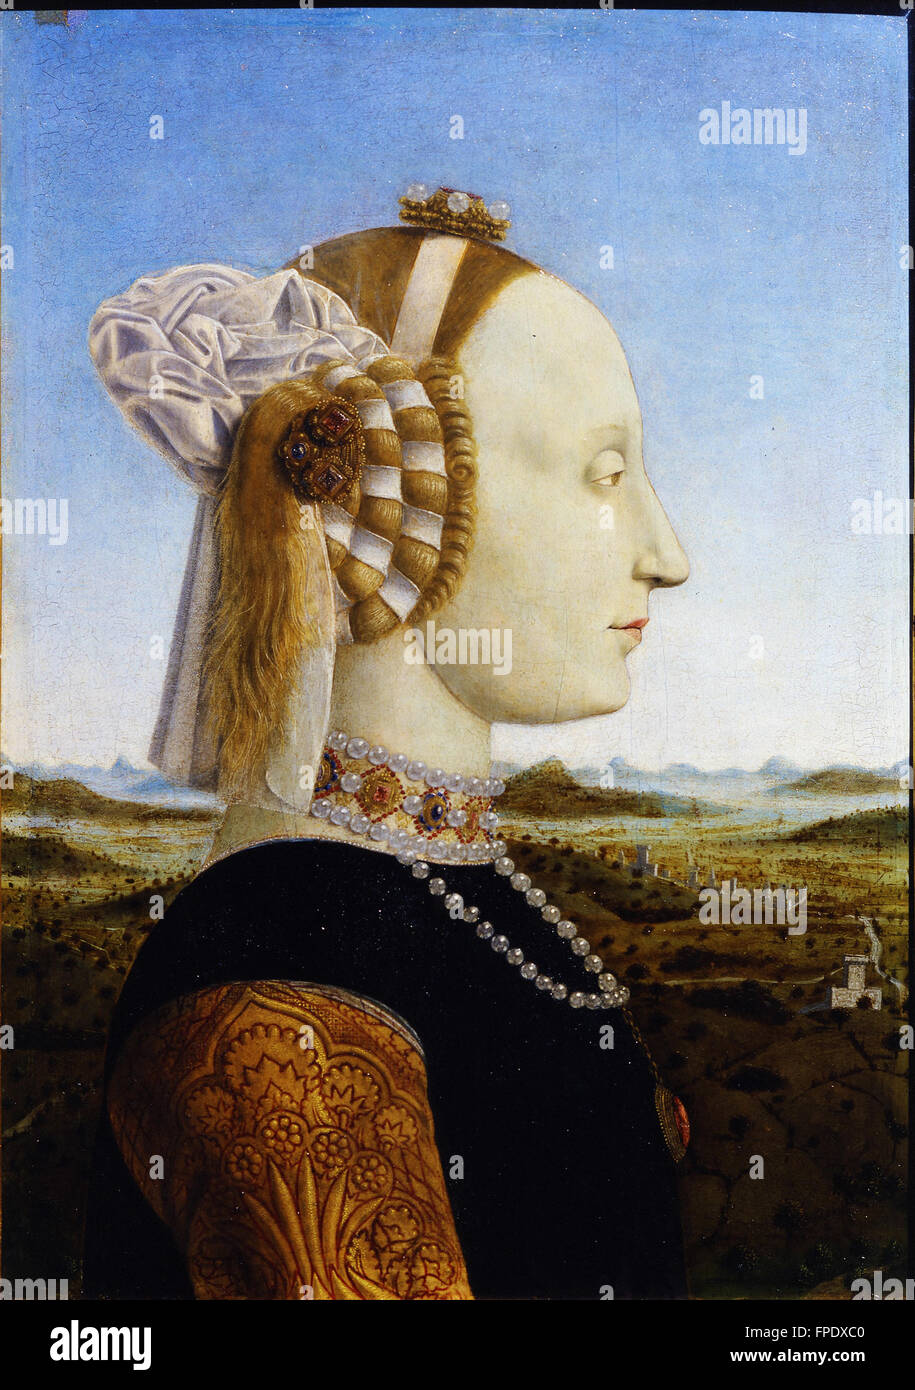 Piero della Francesca  Portraits of the Duke and Duchess of Urbino, Federico da Montefeltro and - Battista - Stock Image